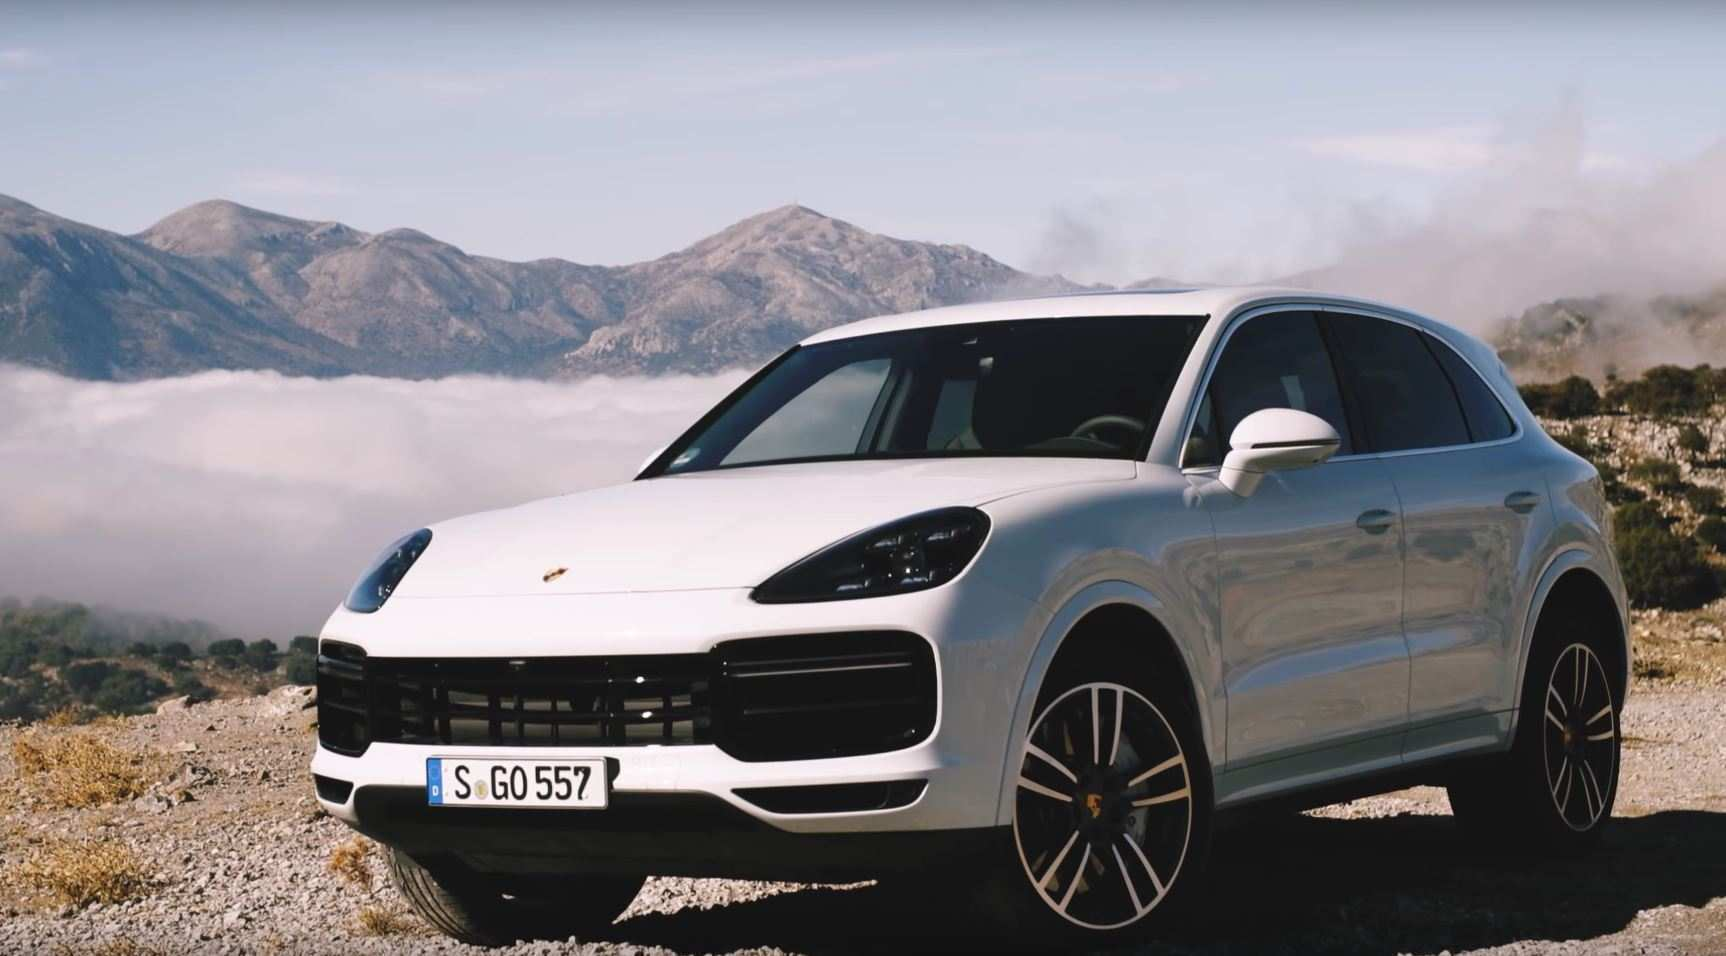 82 Best Review 2019 Porsche Cayenne Turbo Review Overview with 2019 Porsche Cayenne Turbo Review